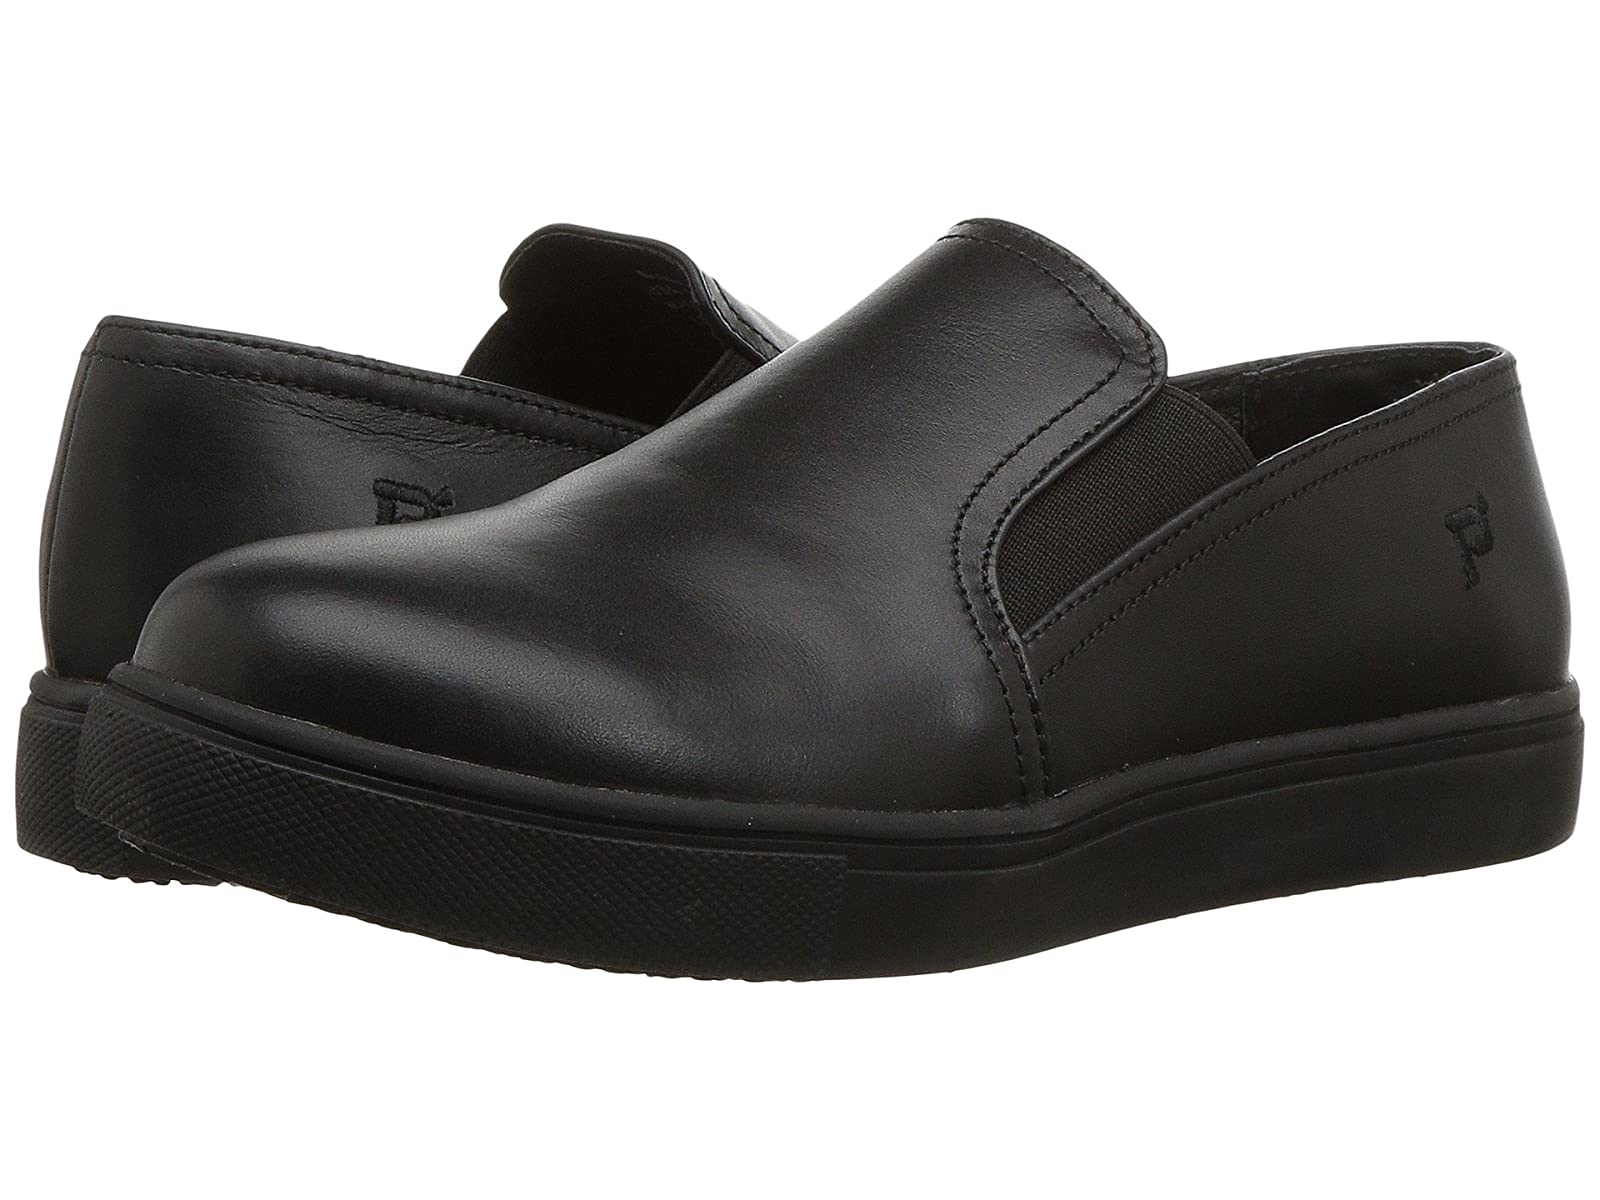 Propet NylaAtmospheric grades have affordable shoes